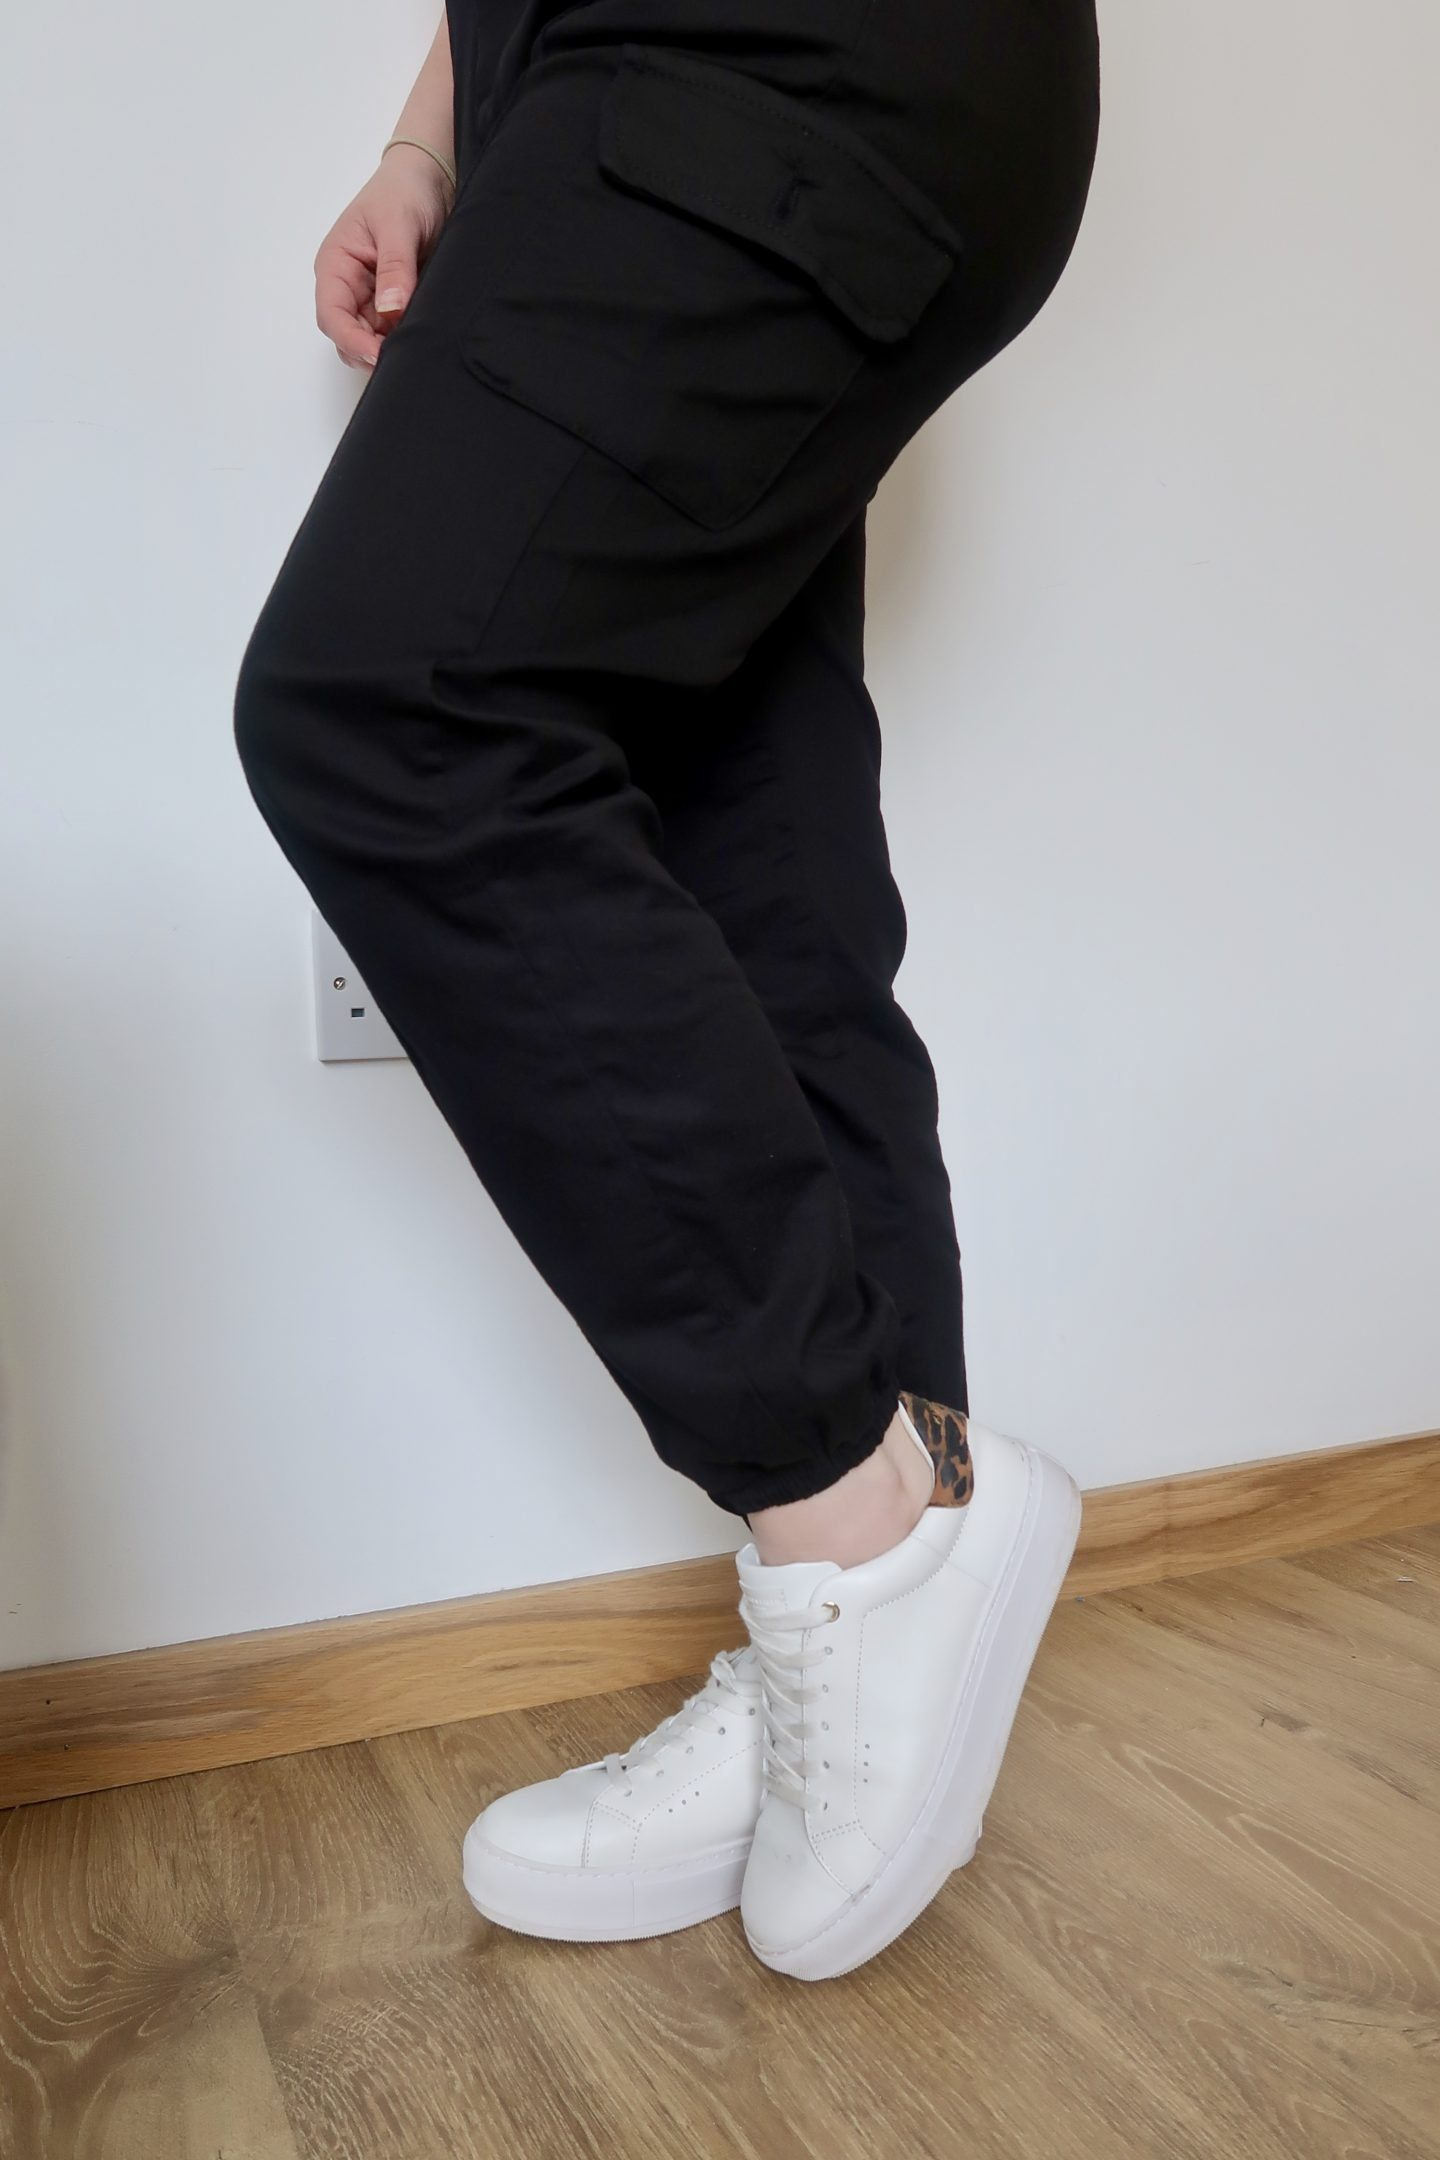 The legs of a woman wearing black cargo trousers and white trainers